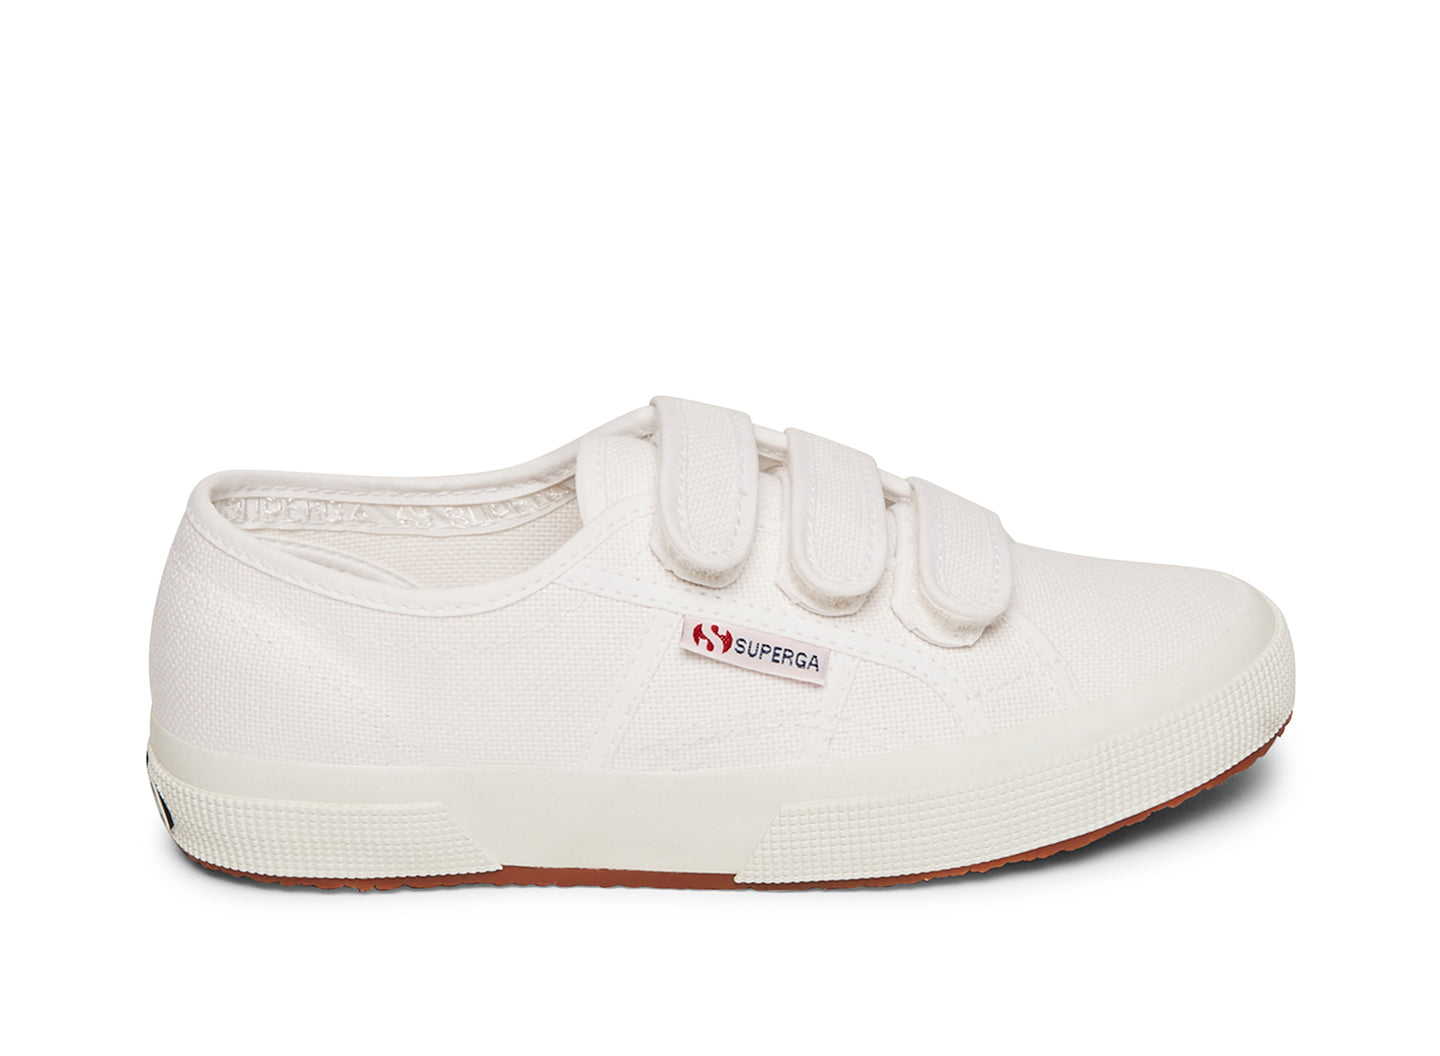 2750 COT3VELU WHITE - Women's